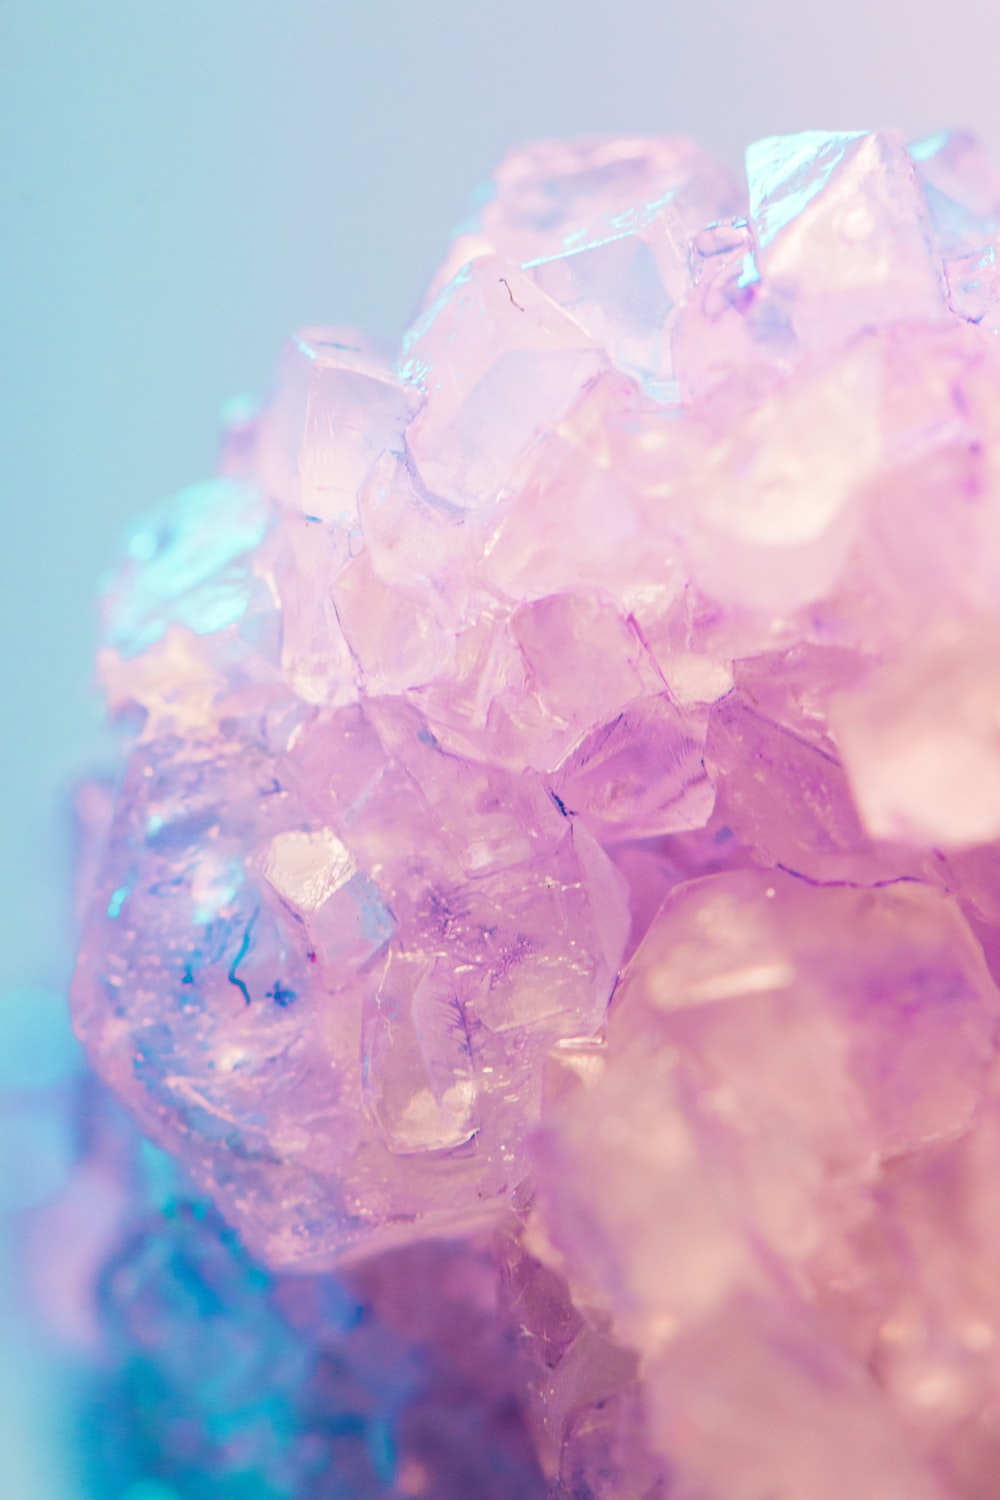 Purple cyrstal quarts stone photo free crystal image on unsplash - Pastel background hd ...